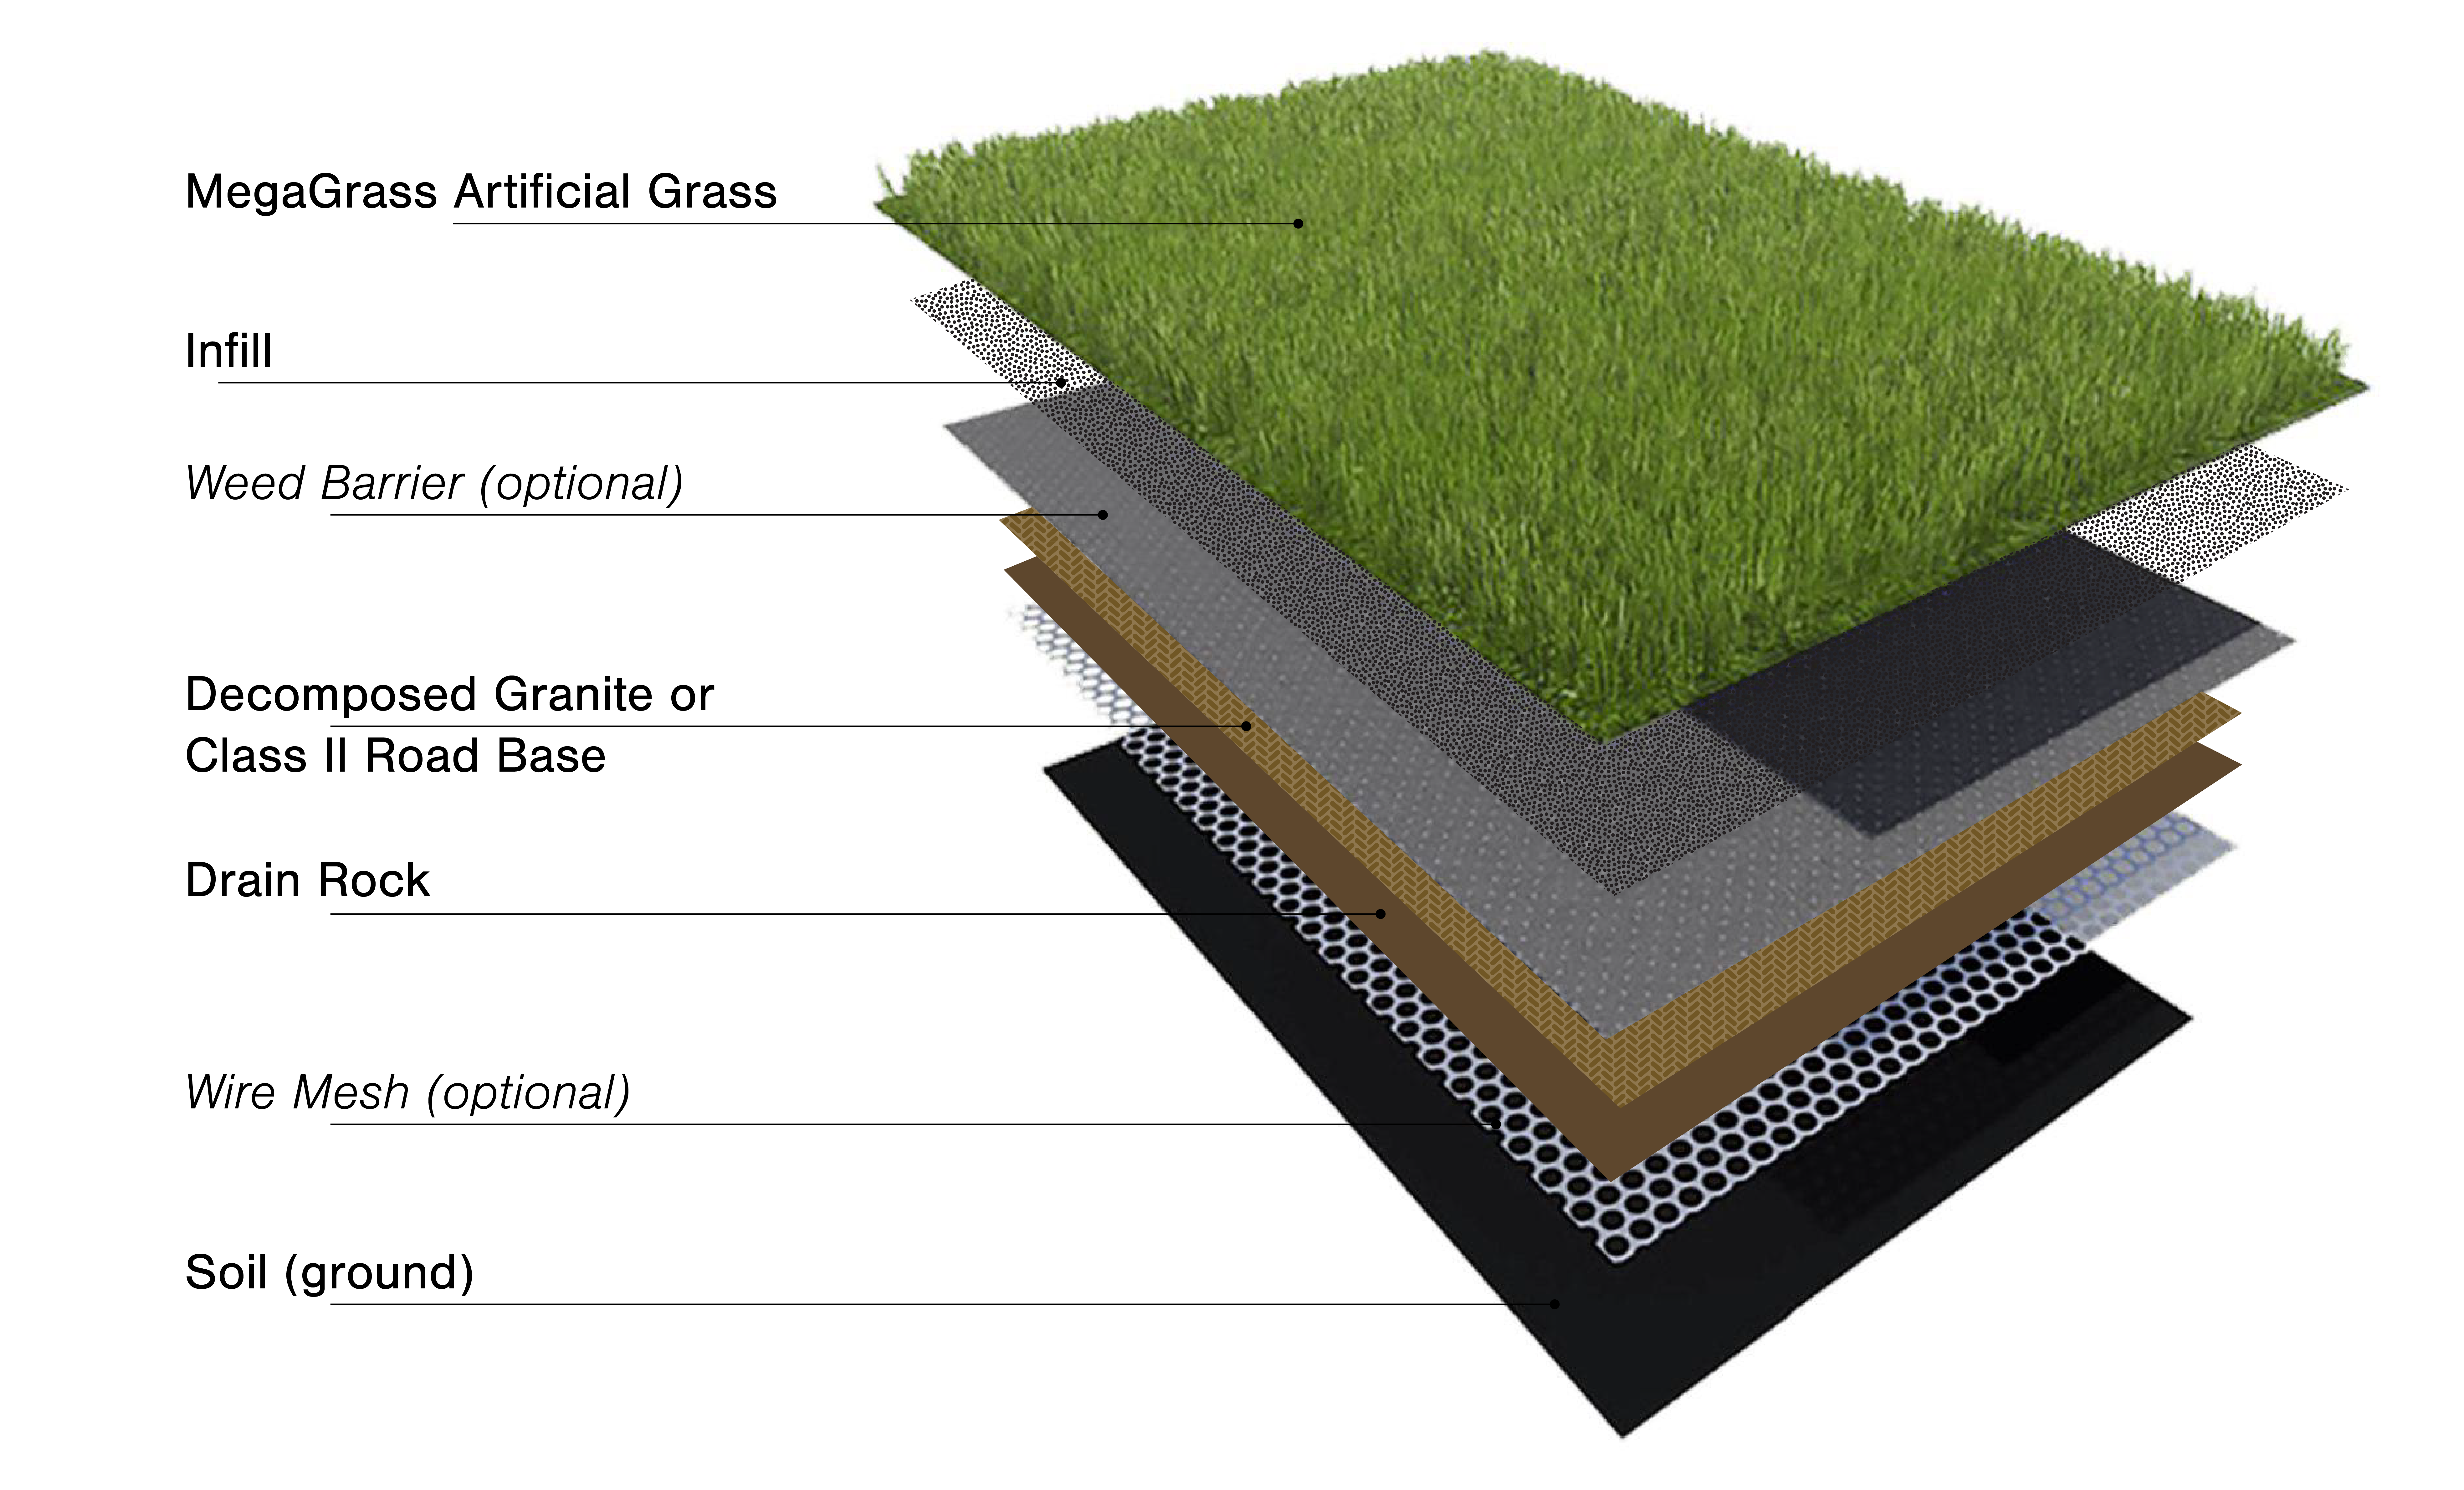 Ly Infill Onto Turf Using A Drop Spreader Spread As Evenly Possible With Grading Rake Or Broom Until Settles Into The Base Of